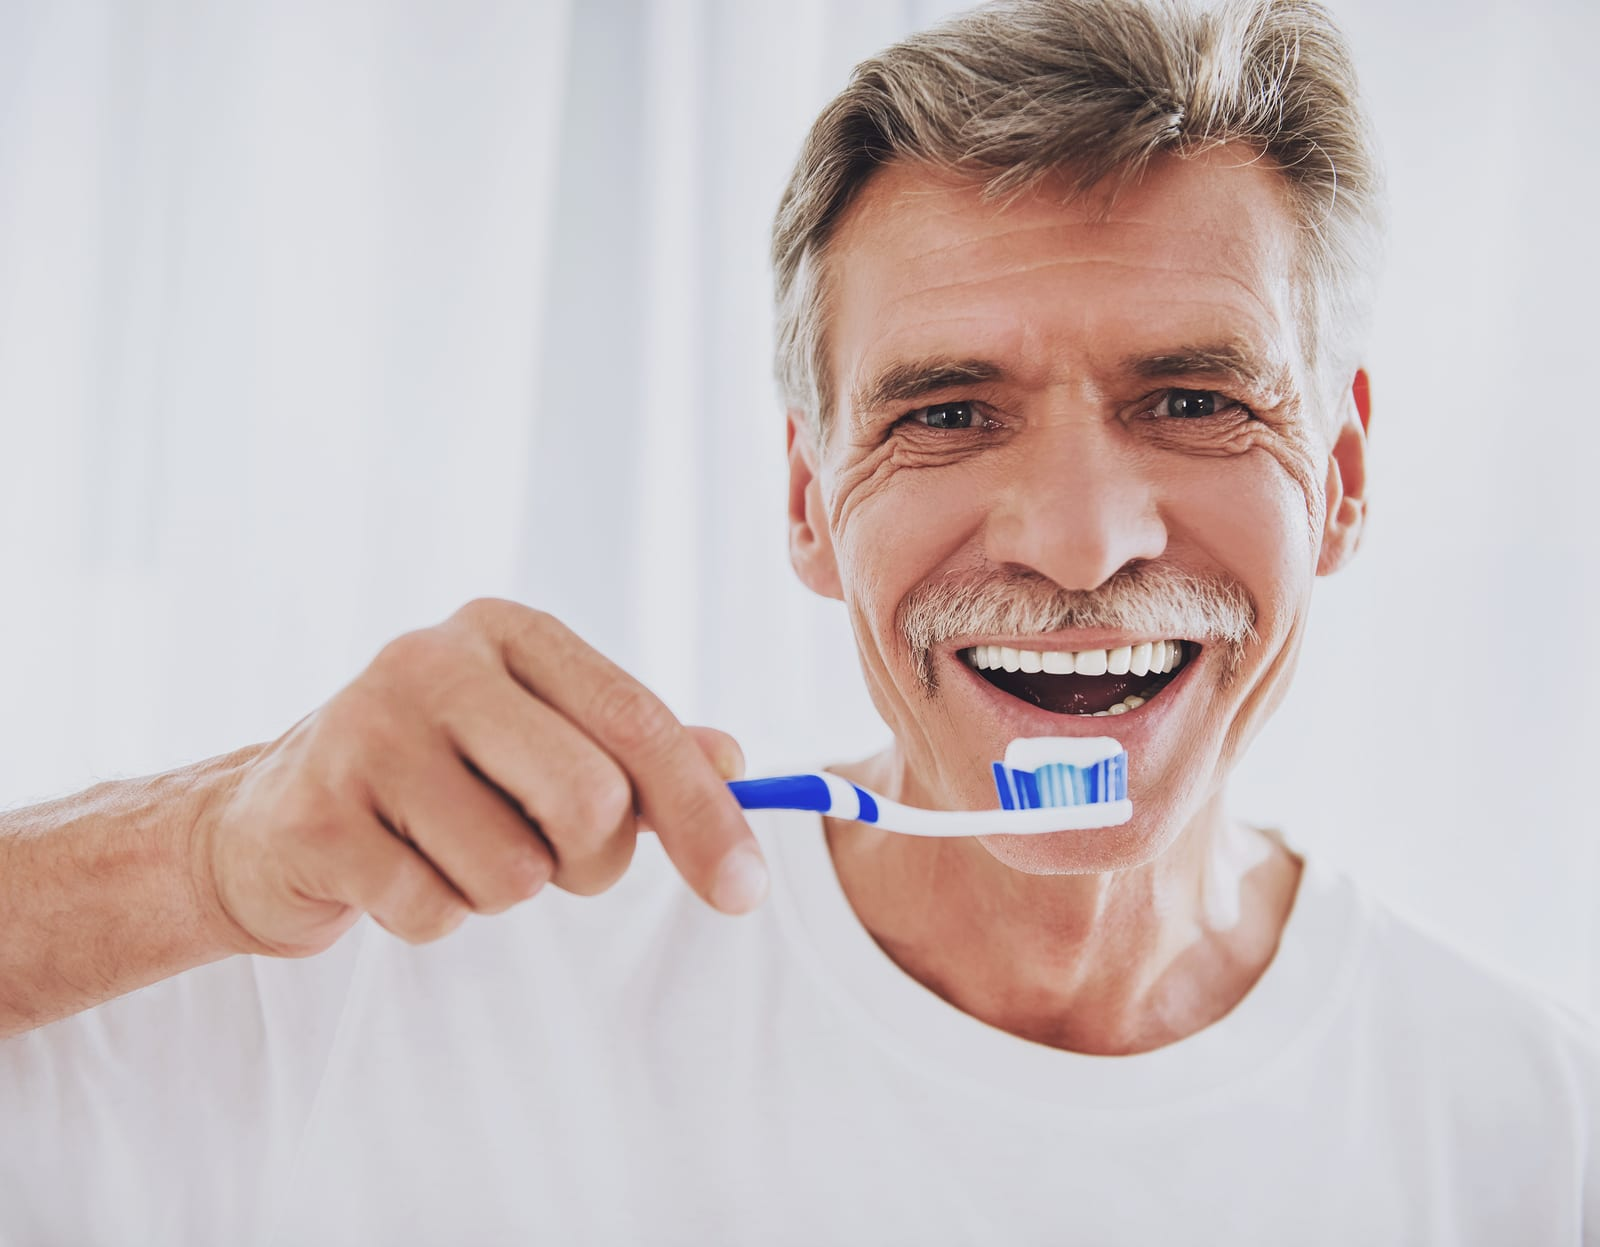 Close up. Senior Man Brushing Teeth in Bathroom. Morning Routine. Healthcare Roncepts. Elder Person at Home. Smiling Man. White Teeth. Smiling Grandfather. Dental Hygiene Concepts.